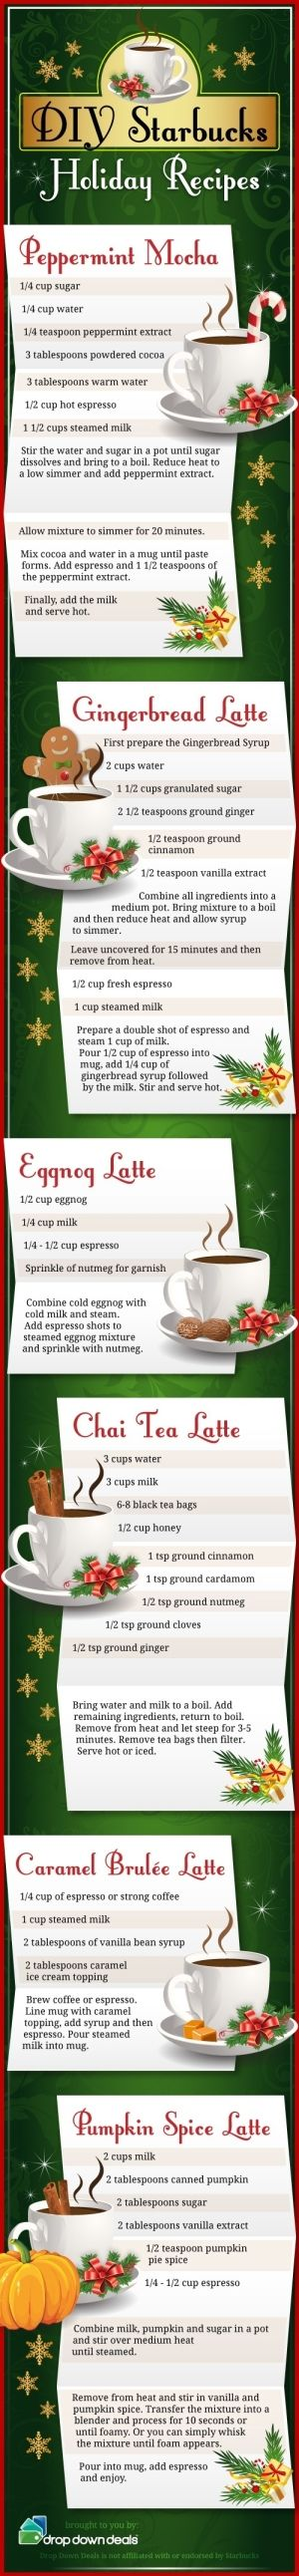 DIY Starbucks.  Must try these and see